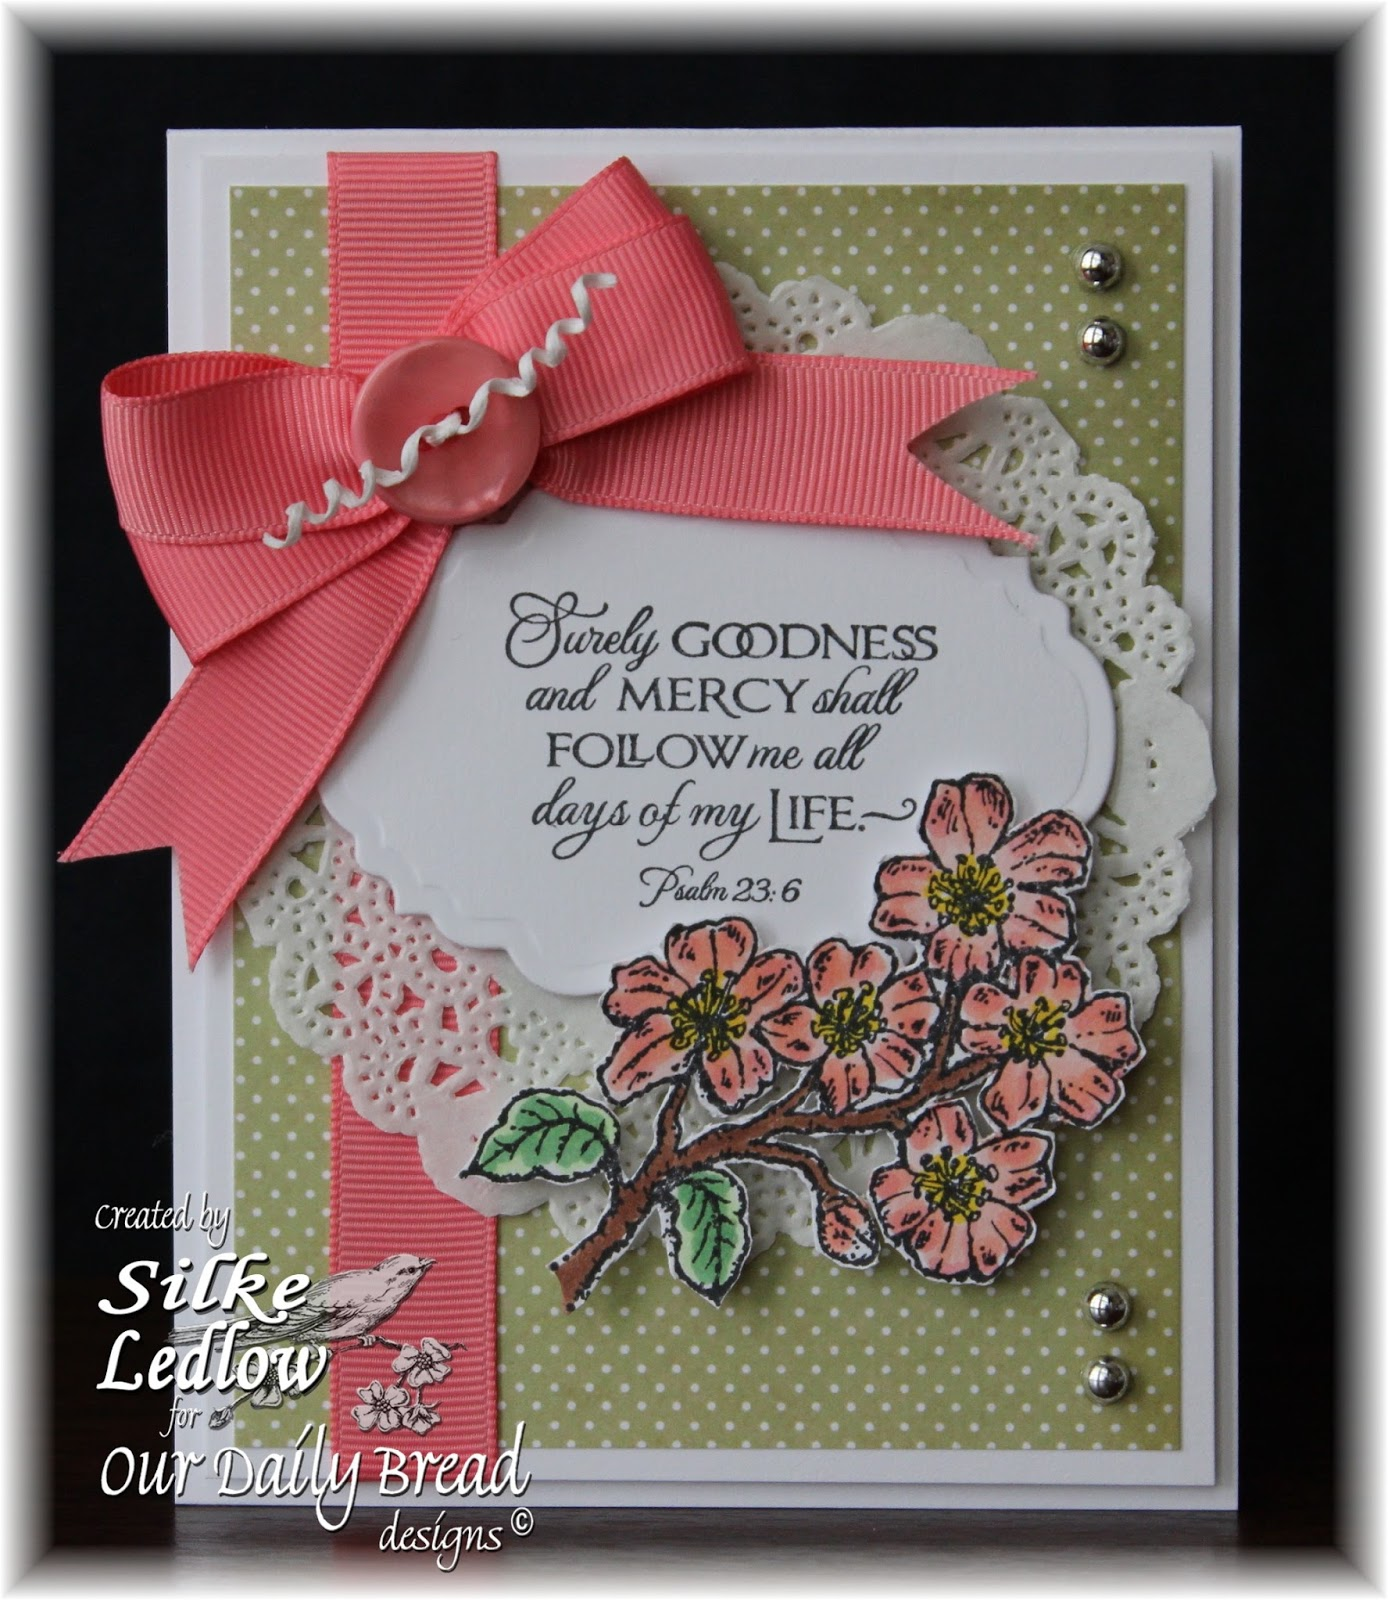 Stamps - Our Daily Bread Designs Cherry Blossom, ODBD Blushing Rose Paper Collection, ODBD Custom Vintage Labels Die